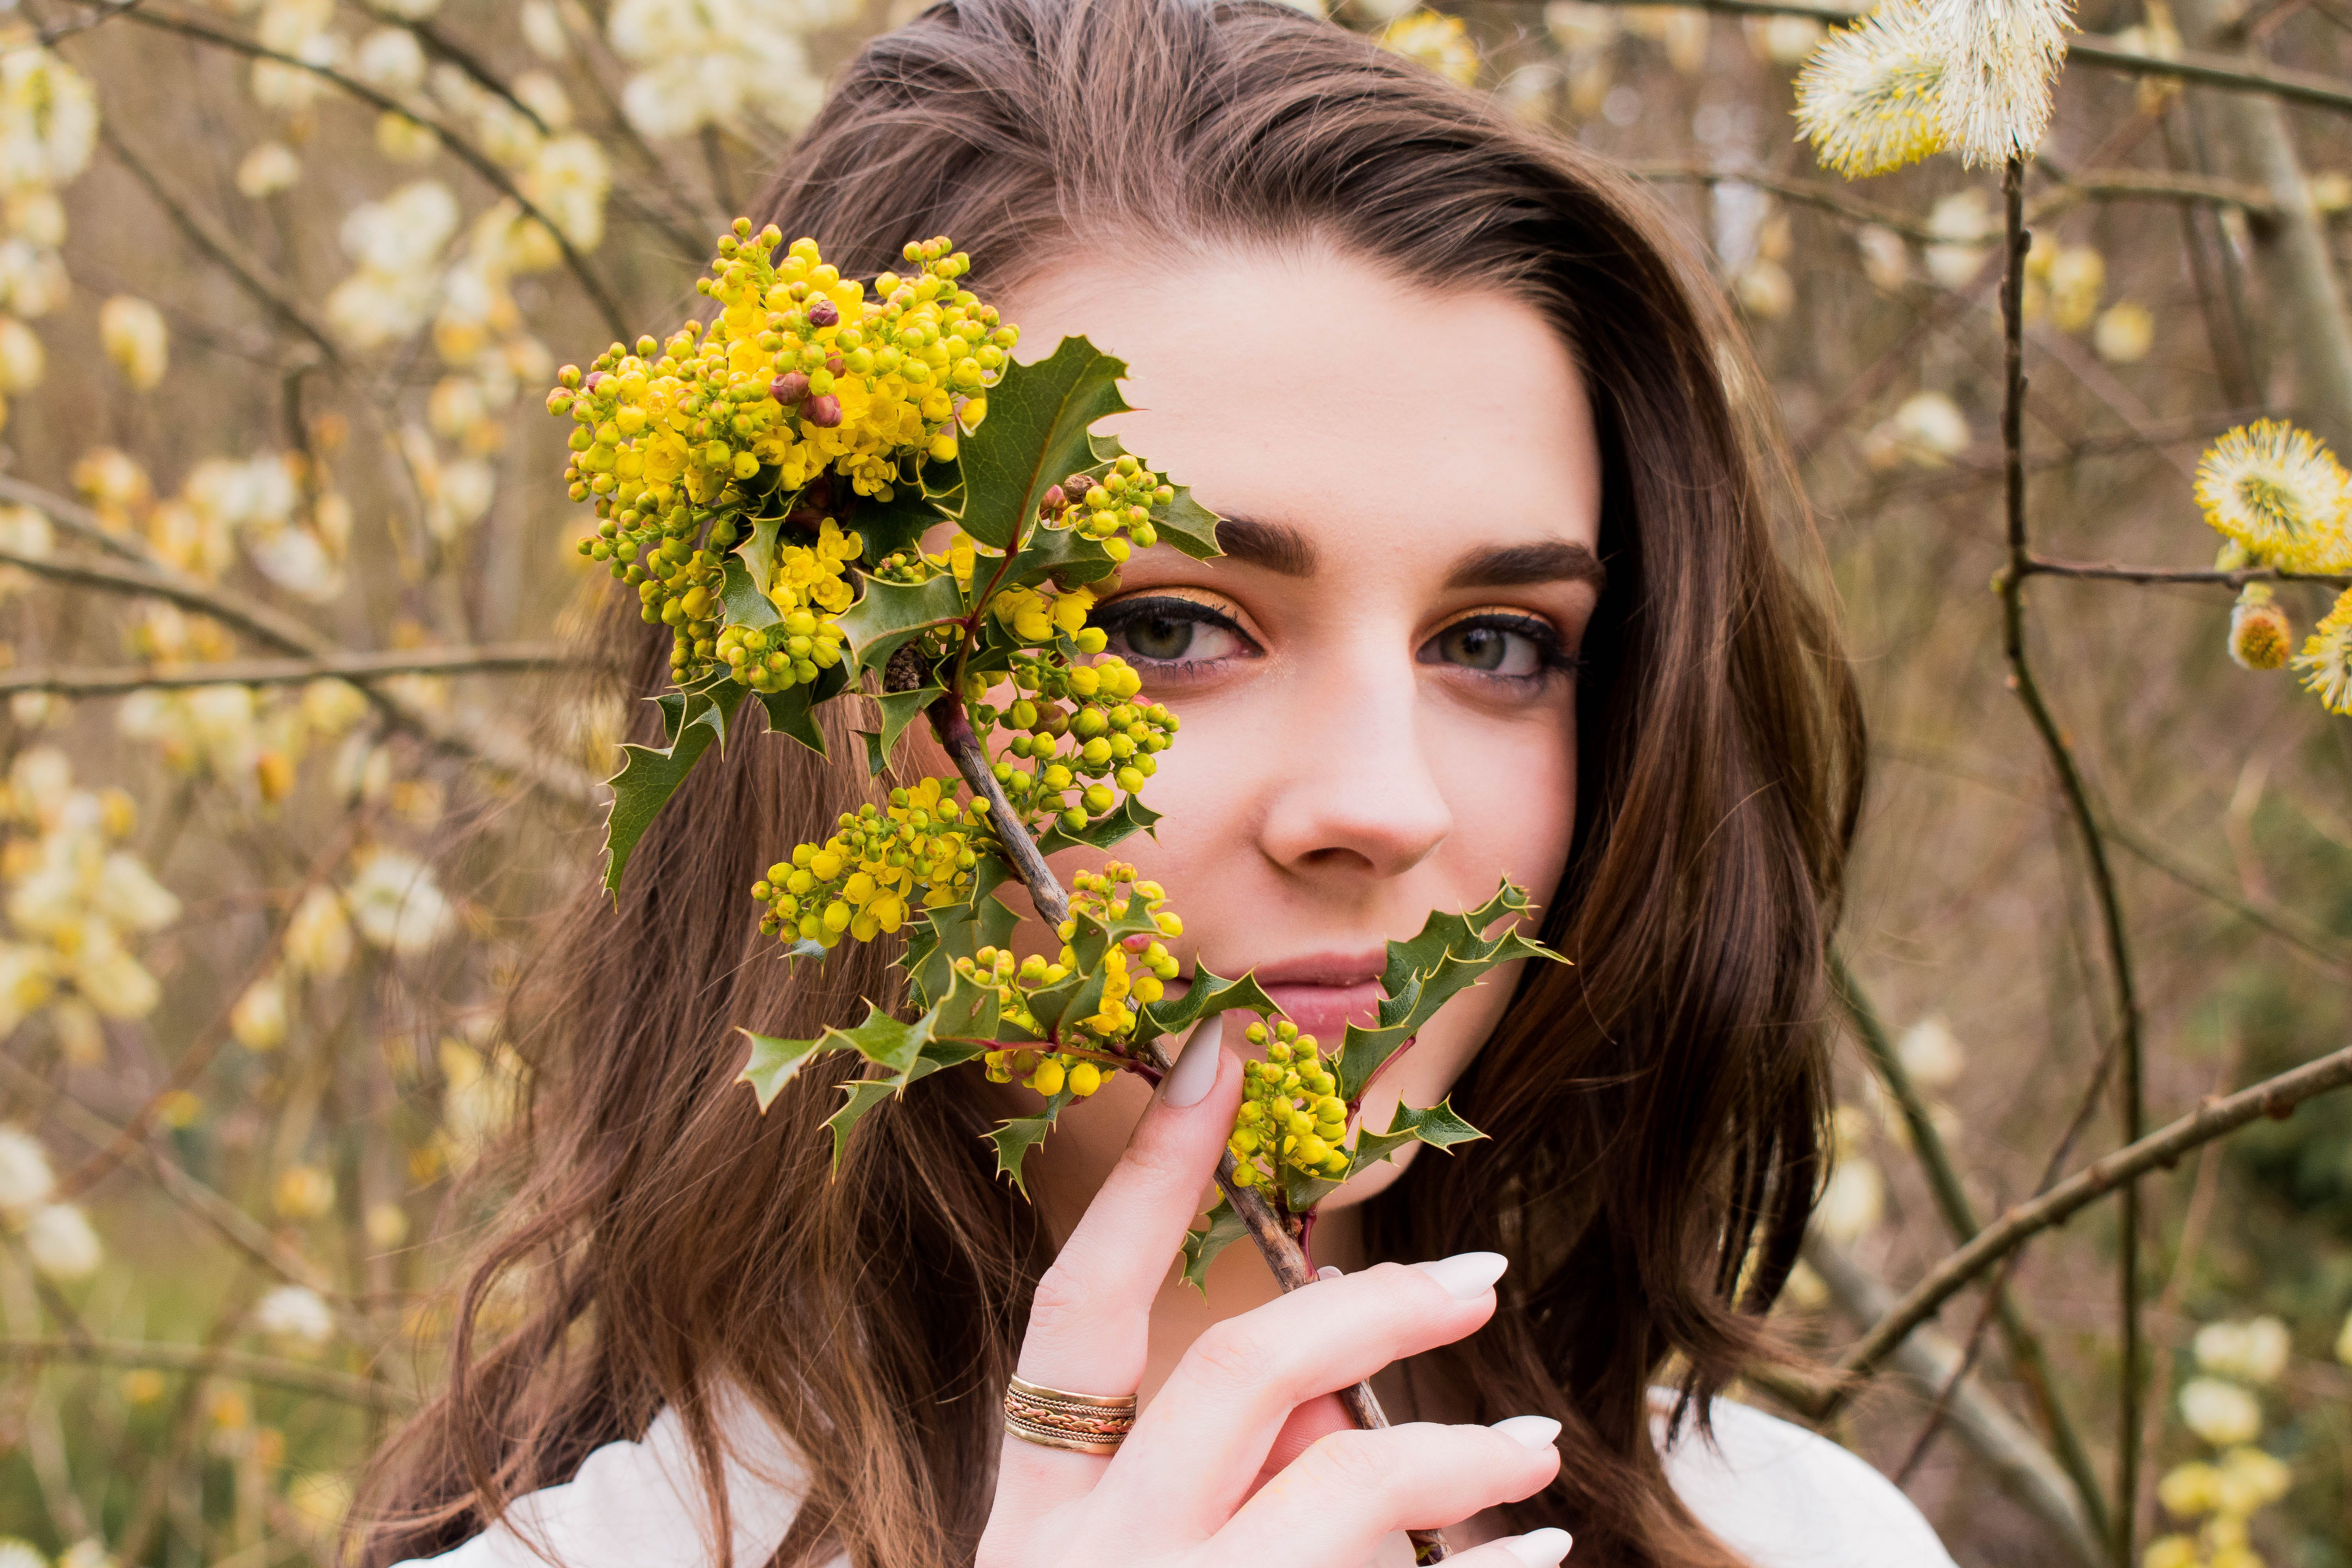 Woman Taking Photo With Holding Yellow Flower Buds at Daytime